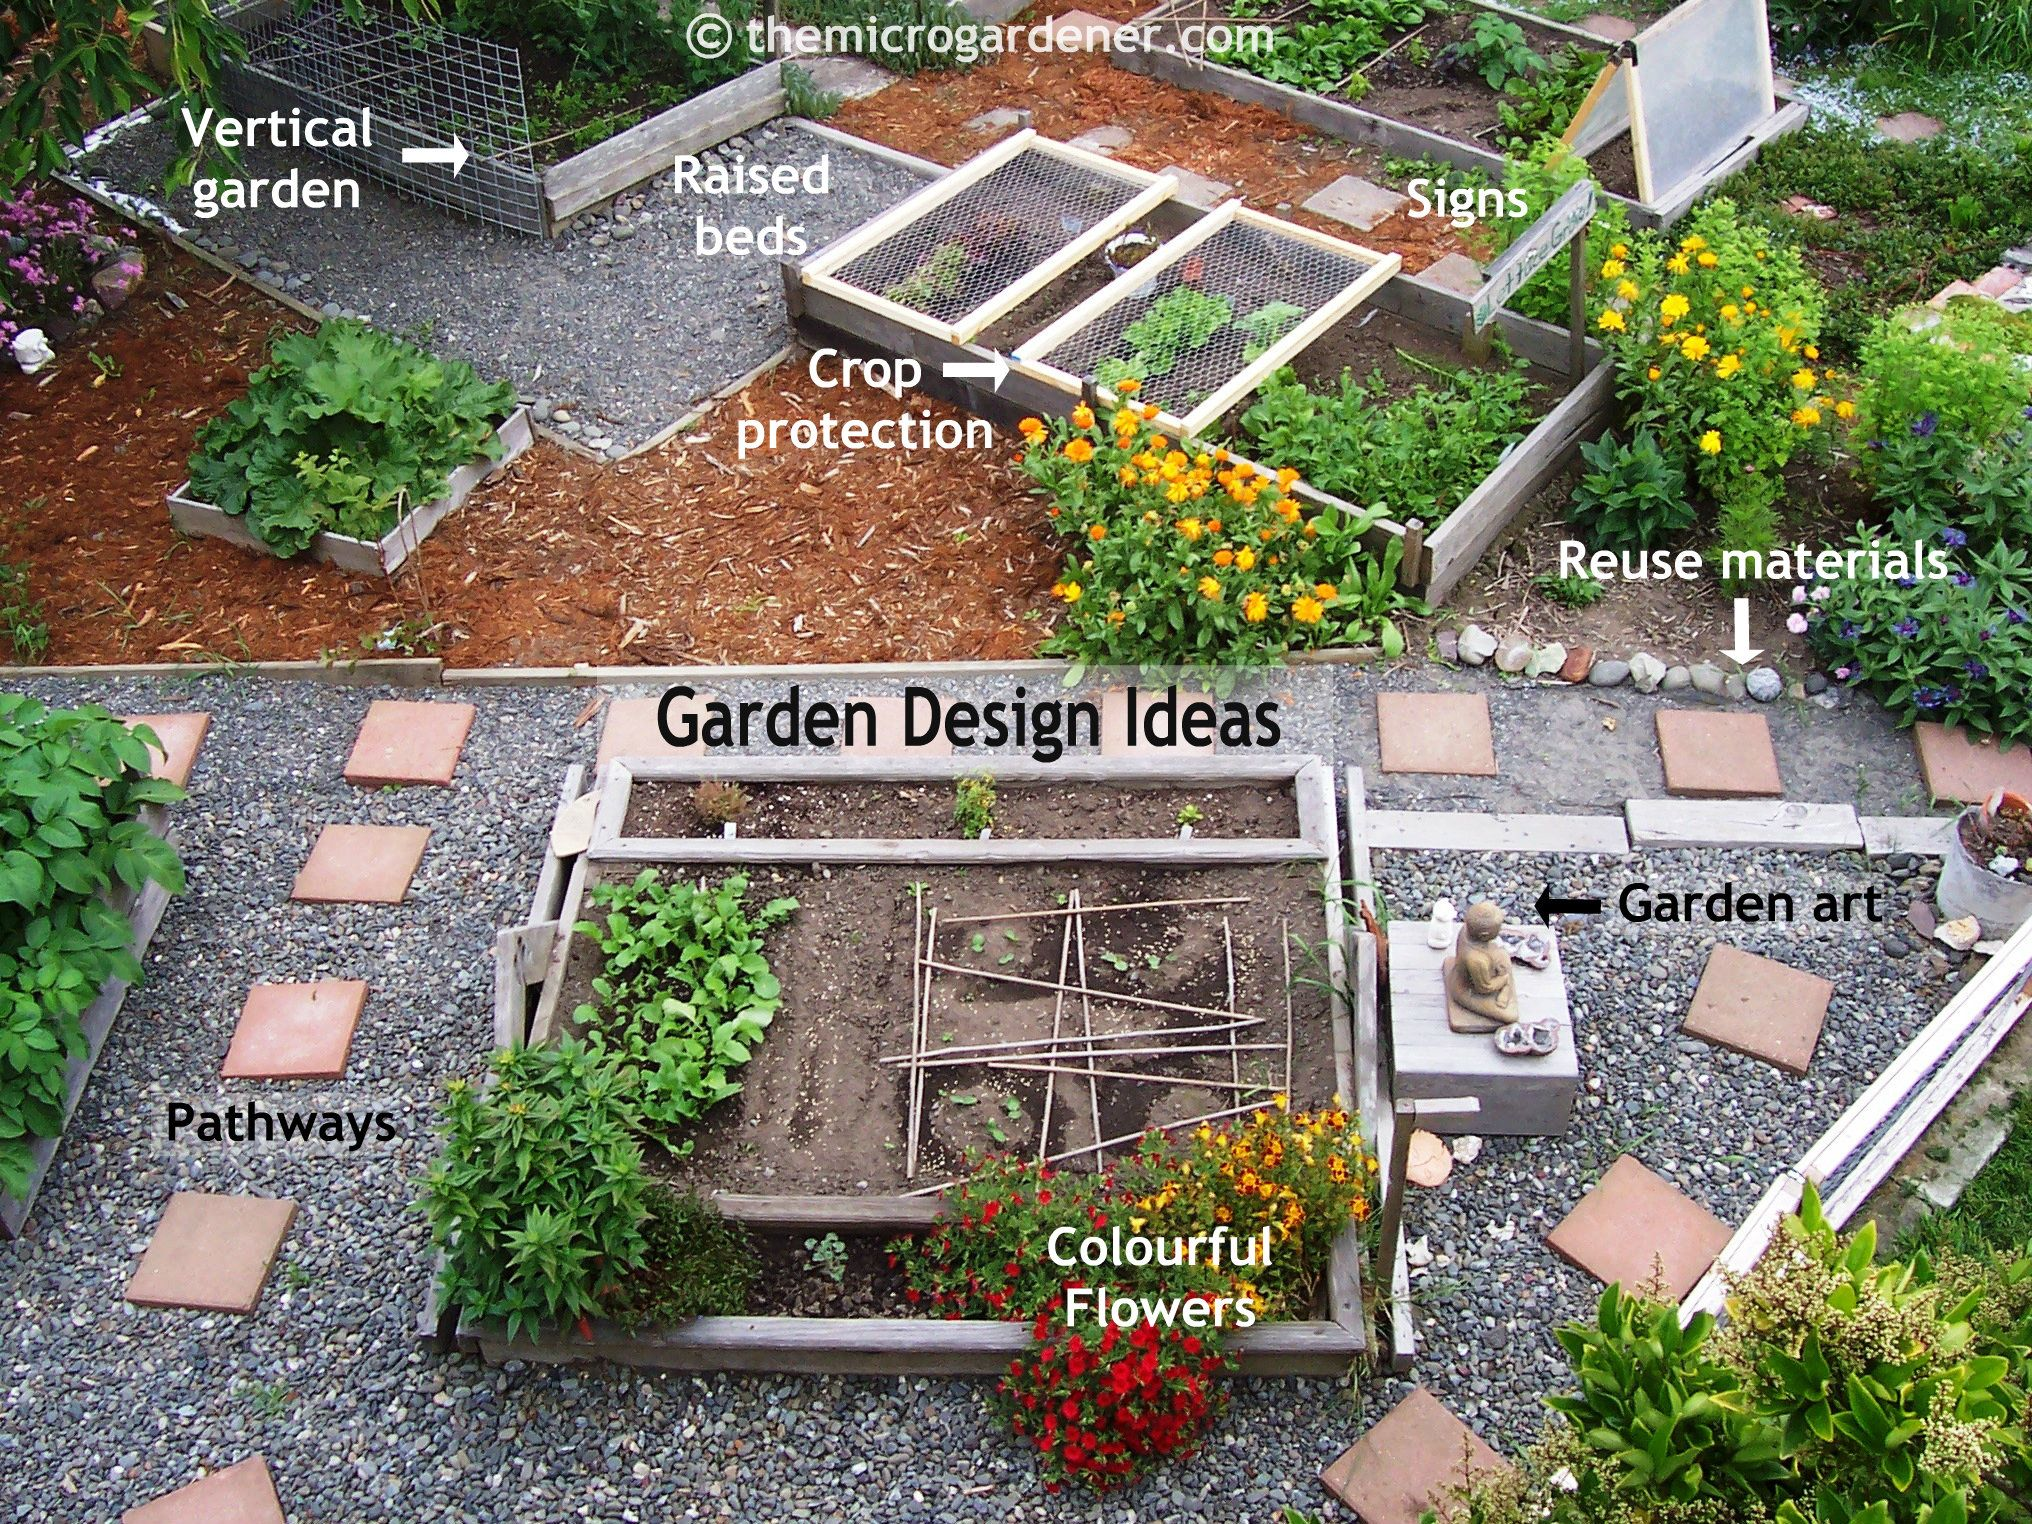 Small Garden Design Ideas On Pinterest Vertical Gardens